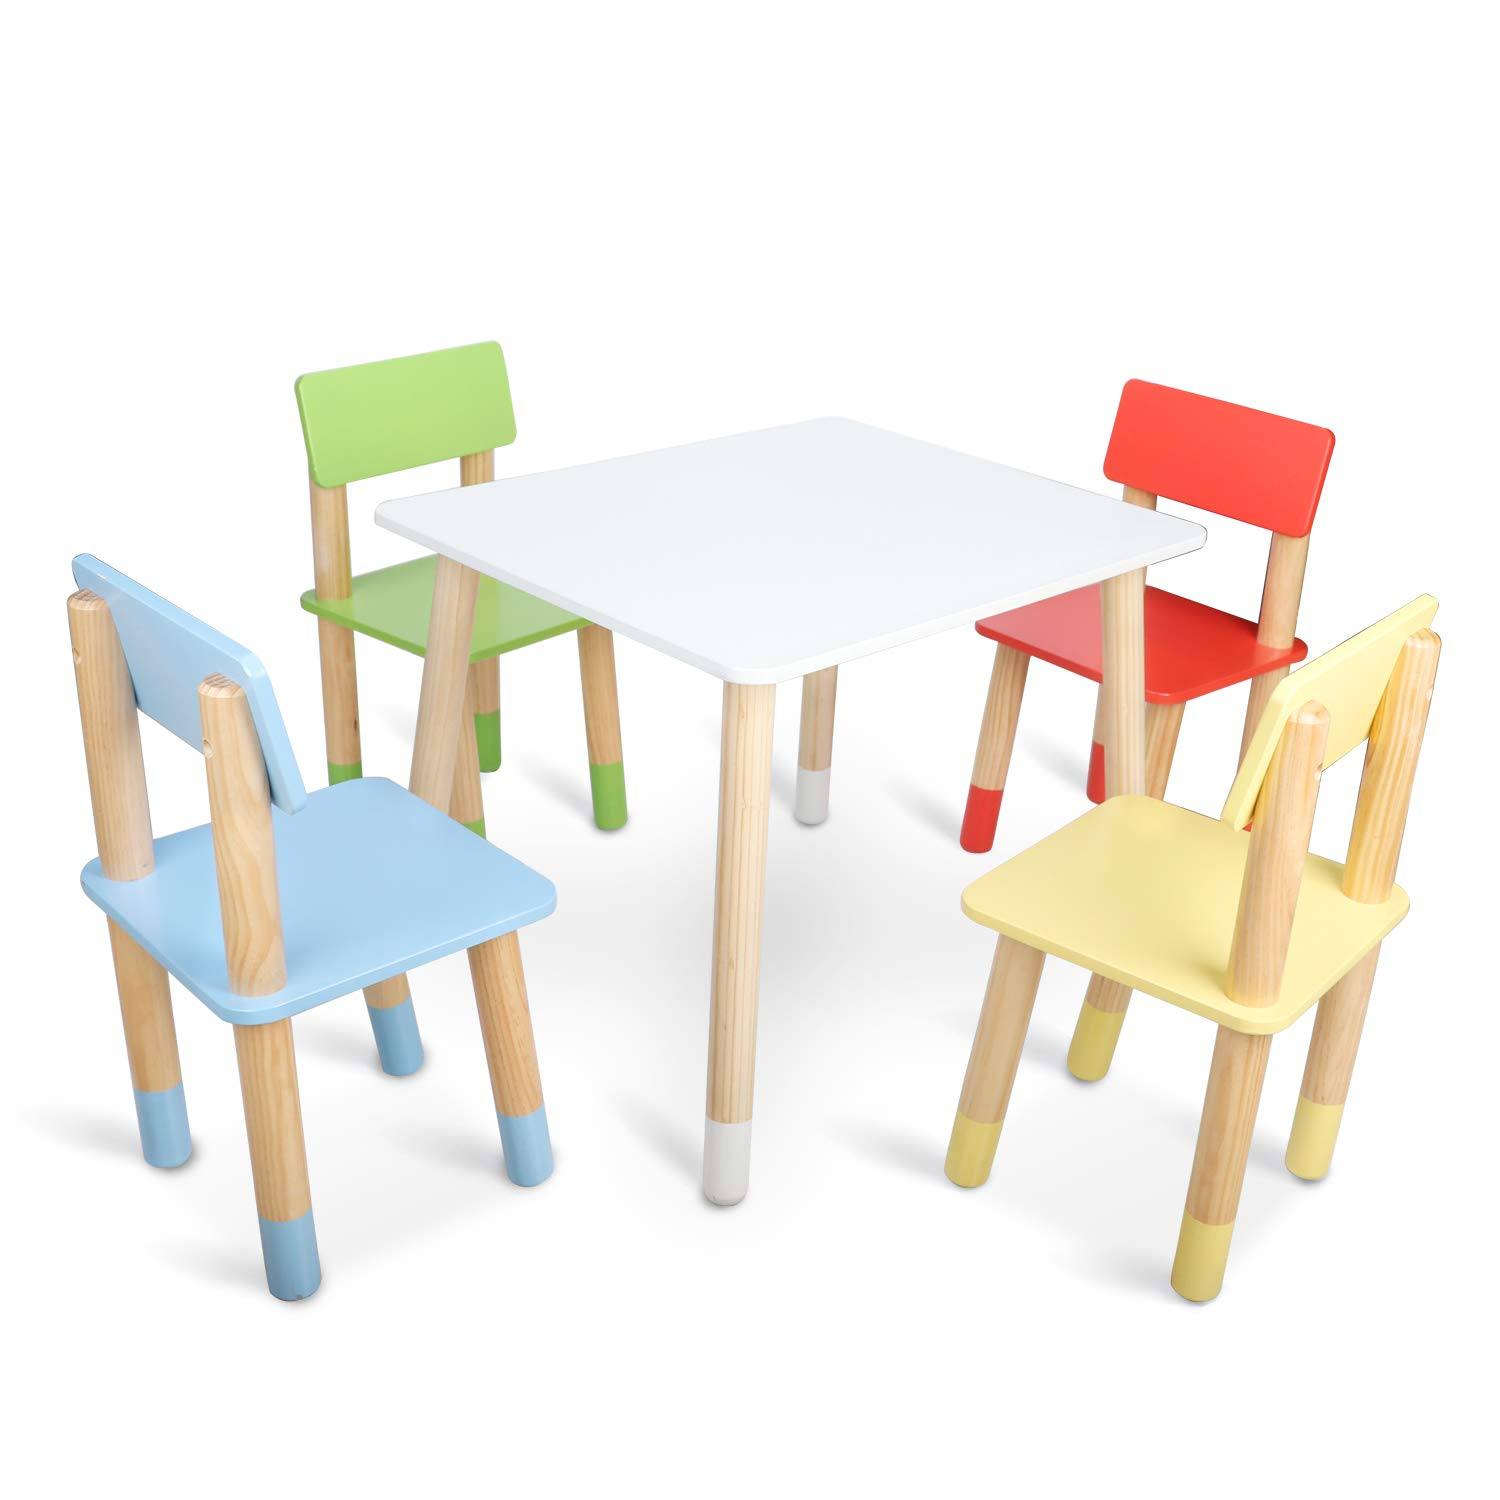 Kids Table and Chairs, BAMMAX Toddler Table and 4-Chairs Set Wooden Activity Table Dining Table Indoor Play Table Chair for 3~8 Years Old Children, BPA-Free, Easy to Assemble by Bammax